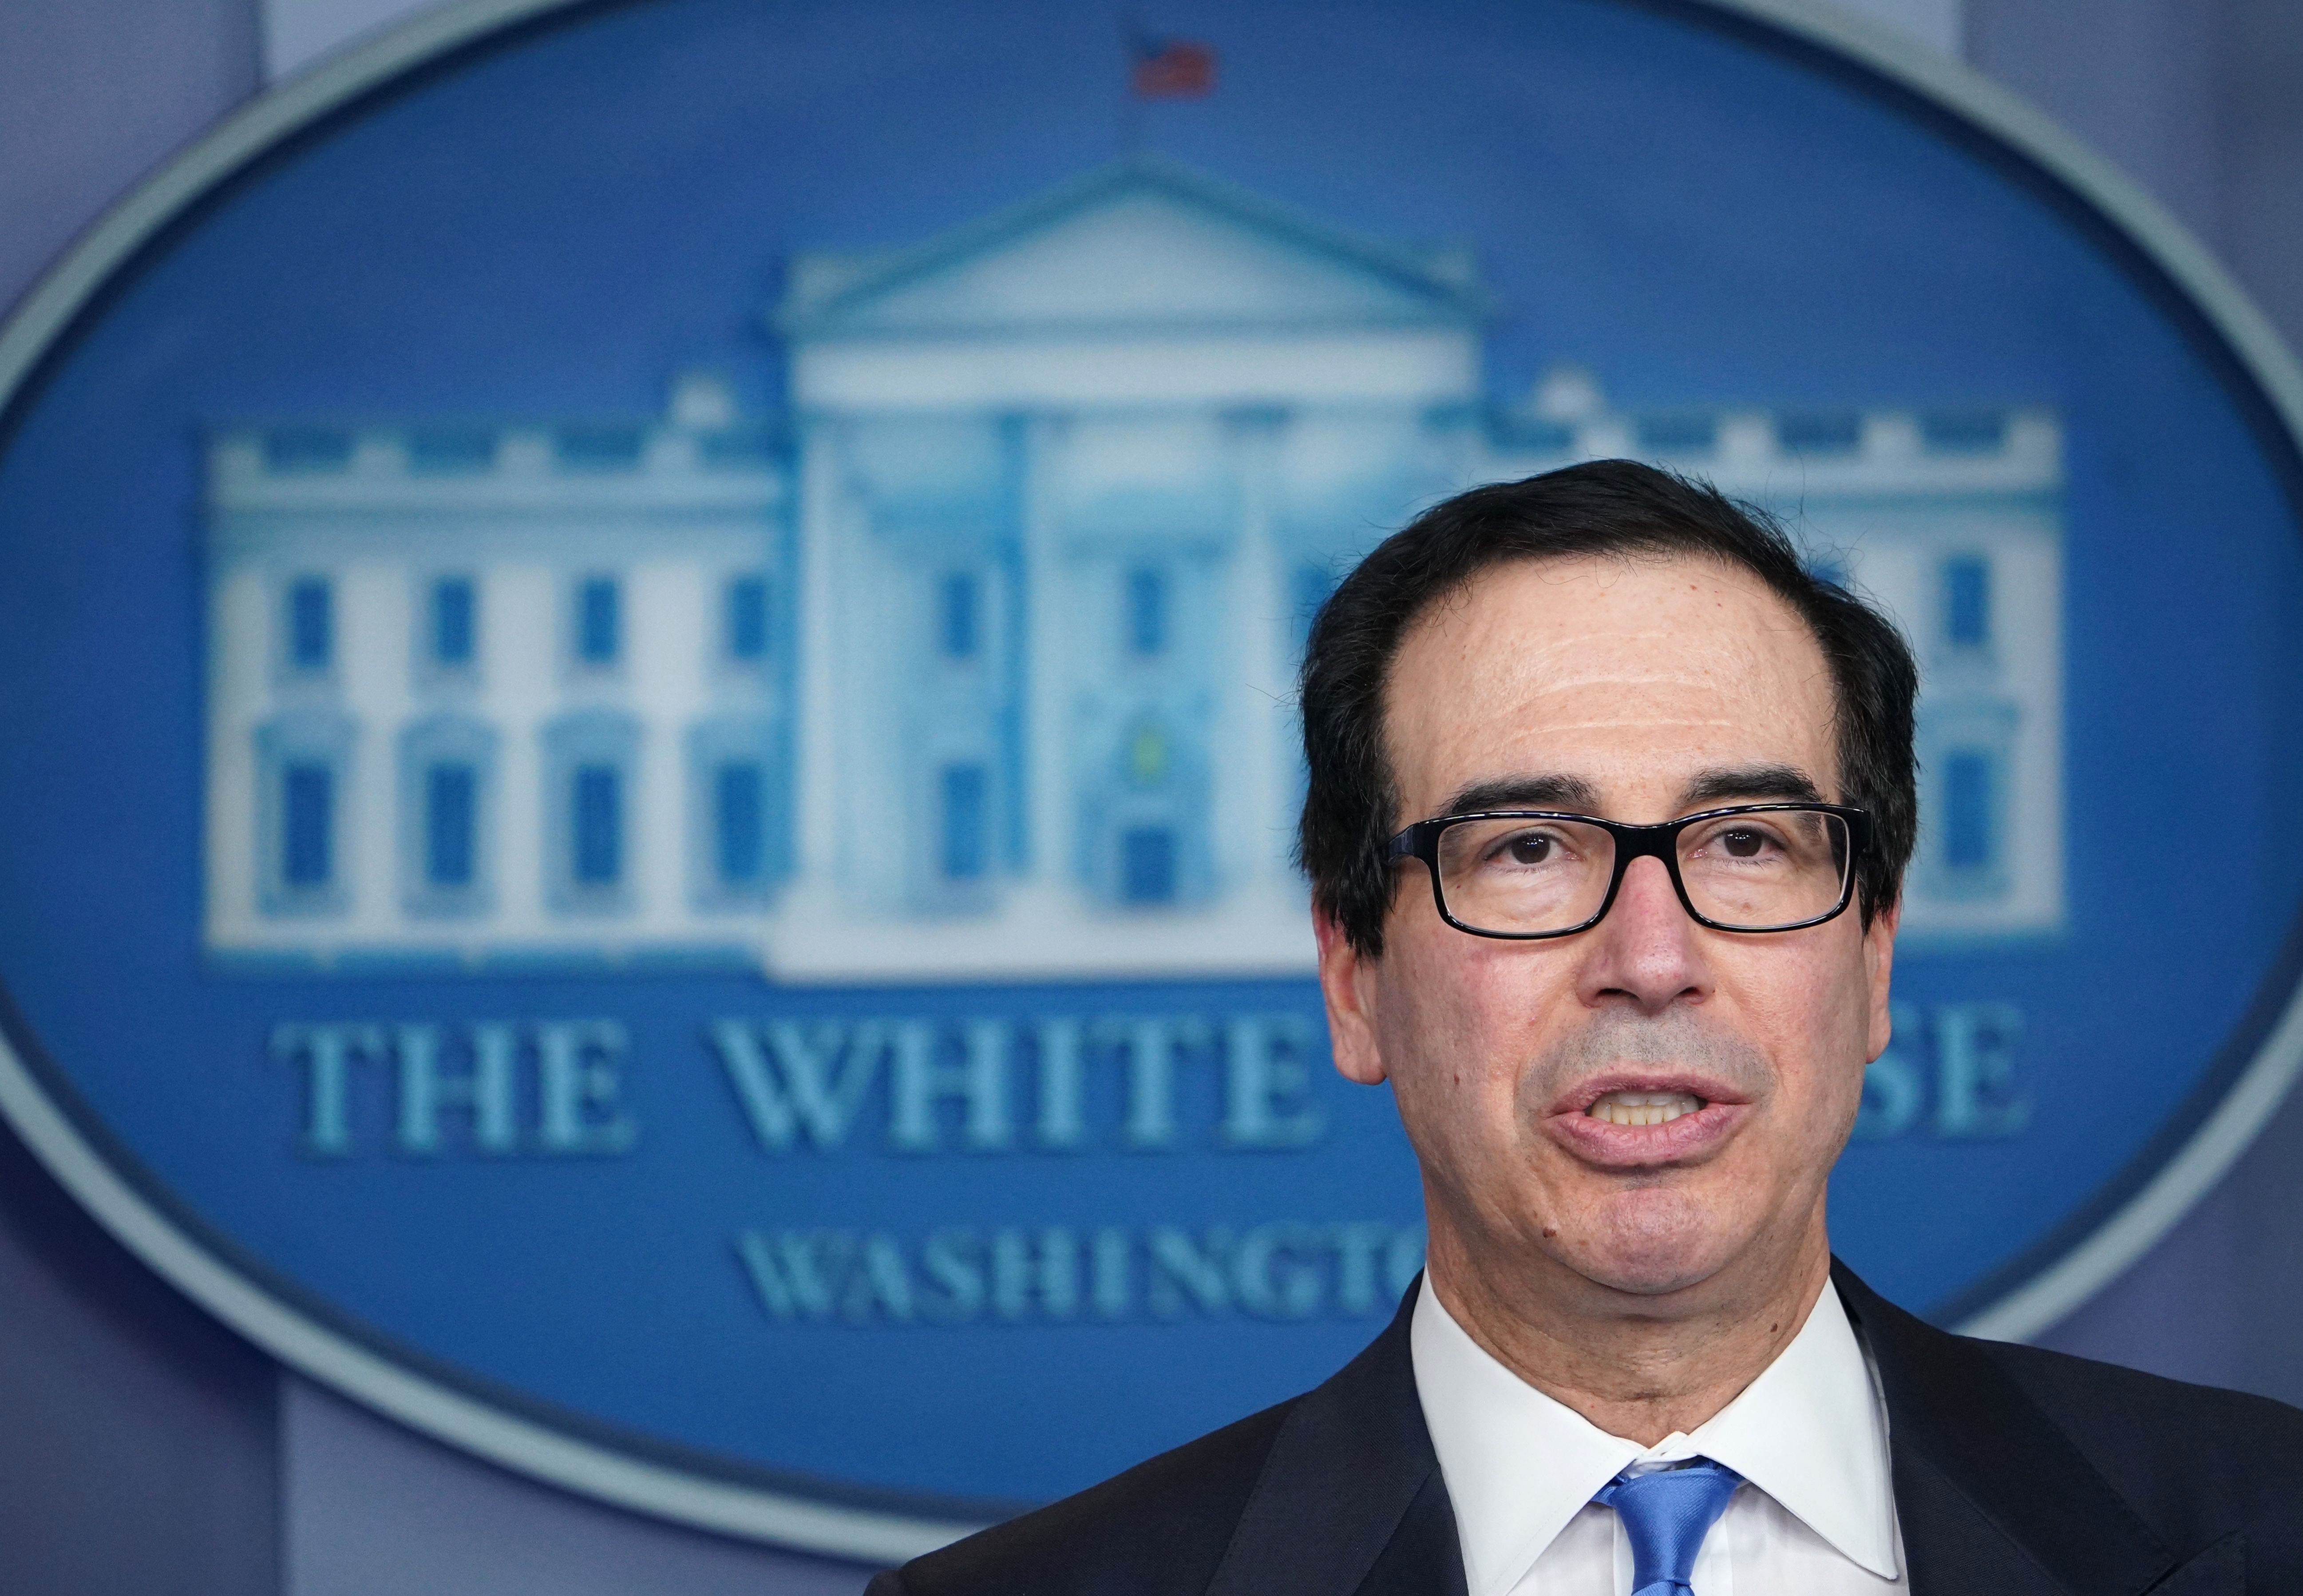 Treasury Secretary Steve Mnuchin speaks at the White House during a briefing about the novel coronavirus on April 21.